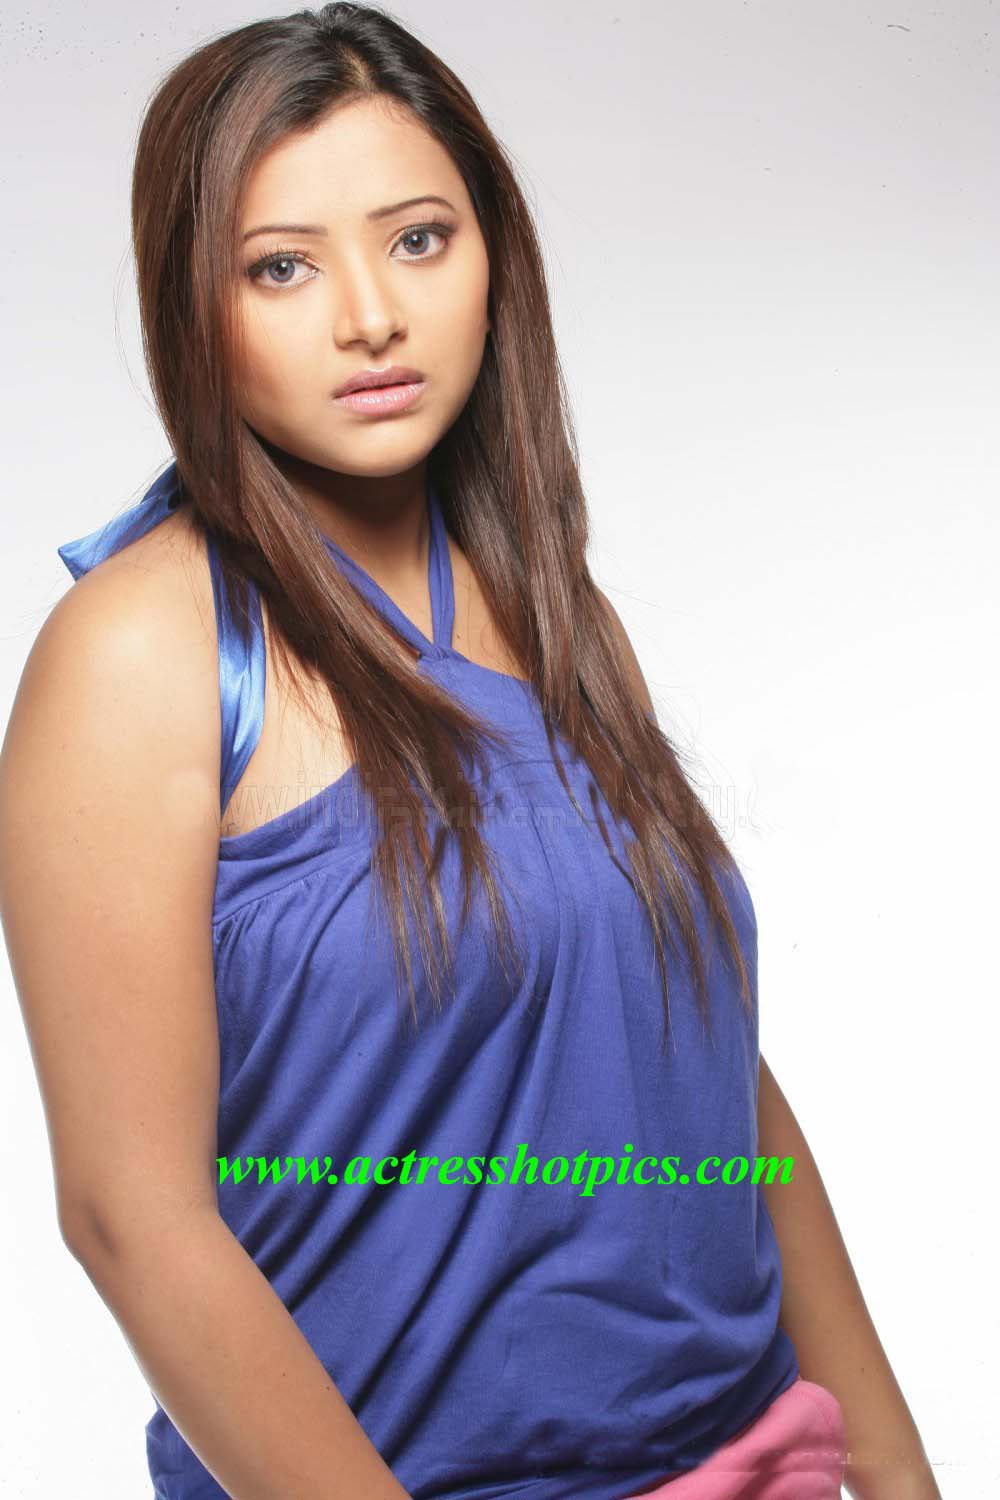 Telugu Actress Sneha Nude Namitha Tight Dress Masala Rinki